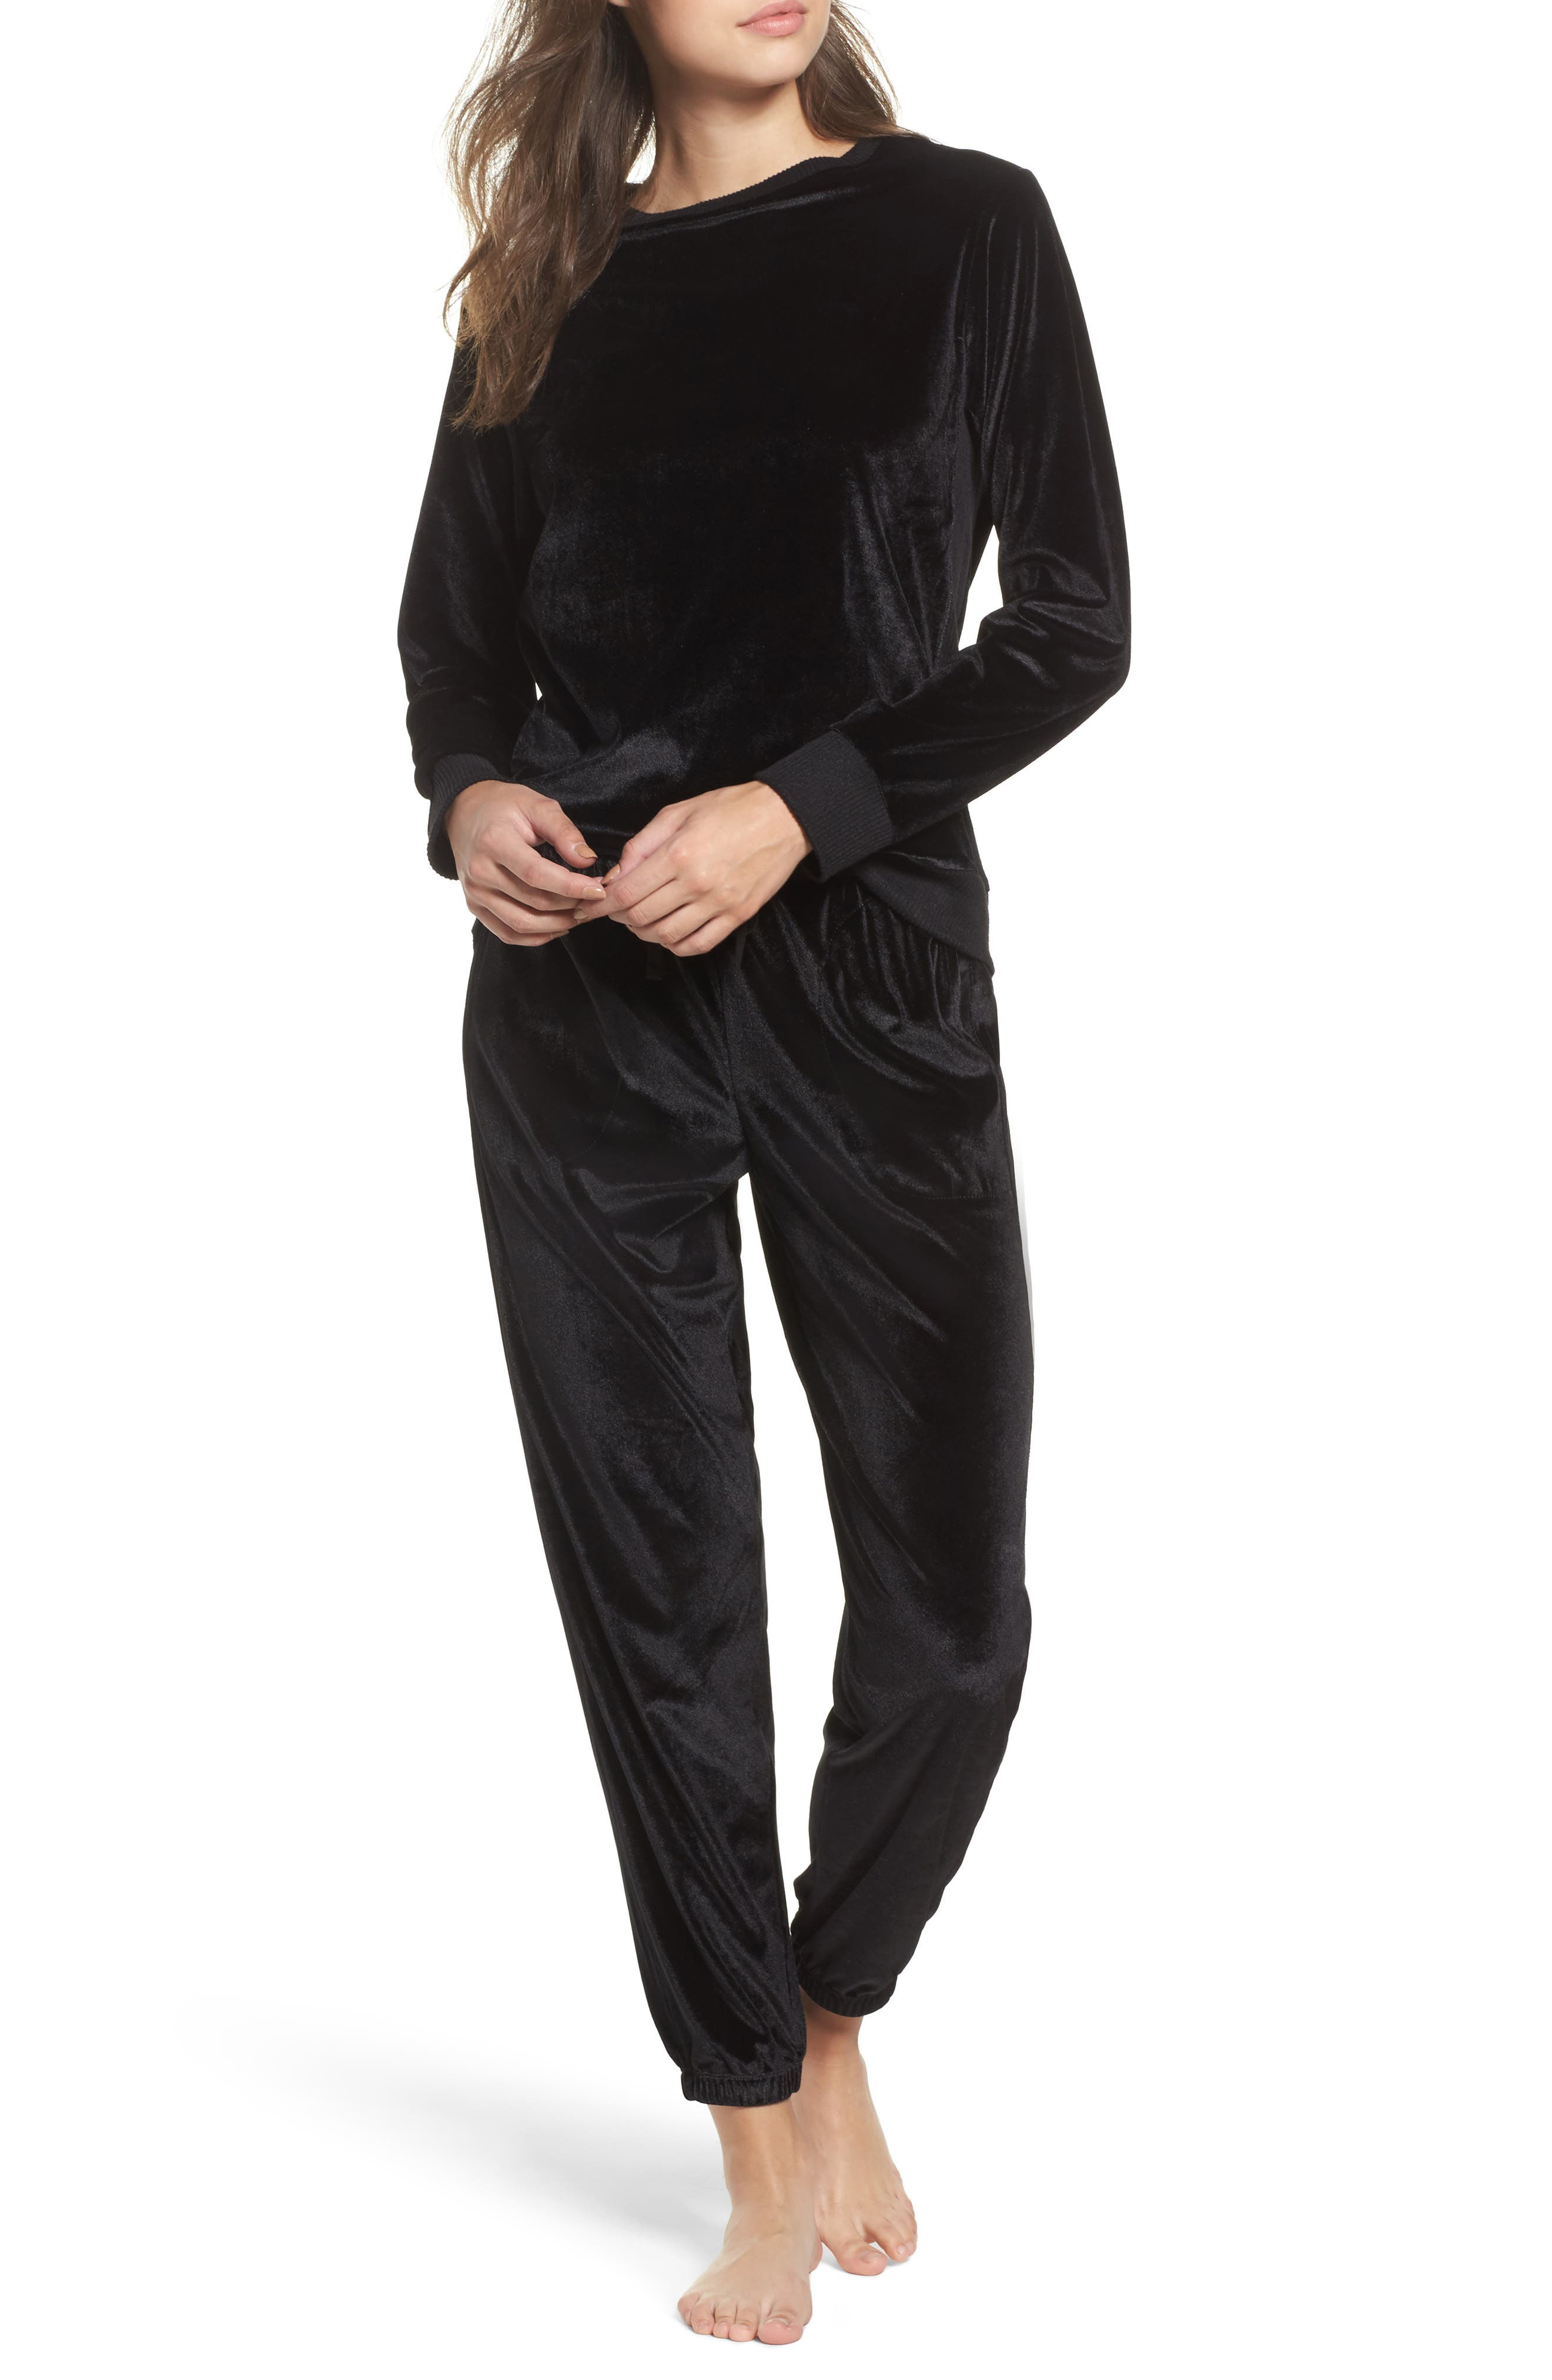 Velour Lounge Jogger Pants,                             Alternate thumbnail 7, color,                             Black